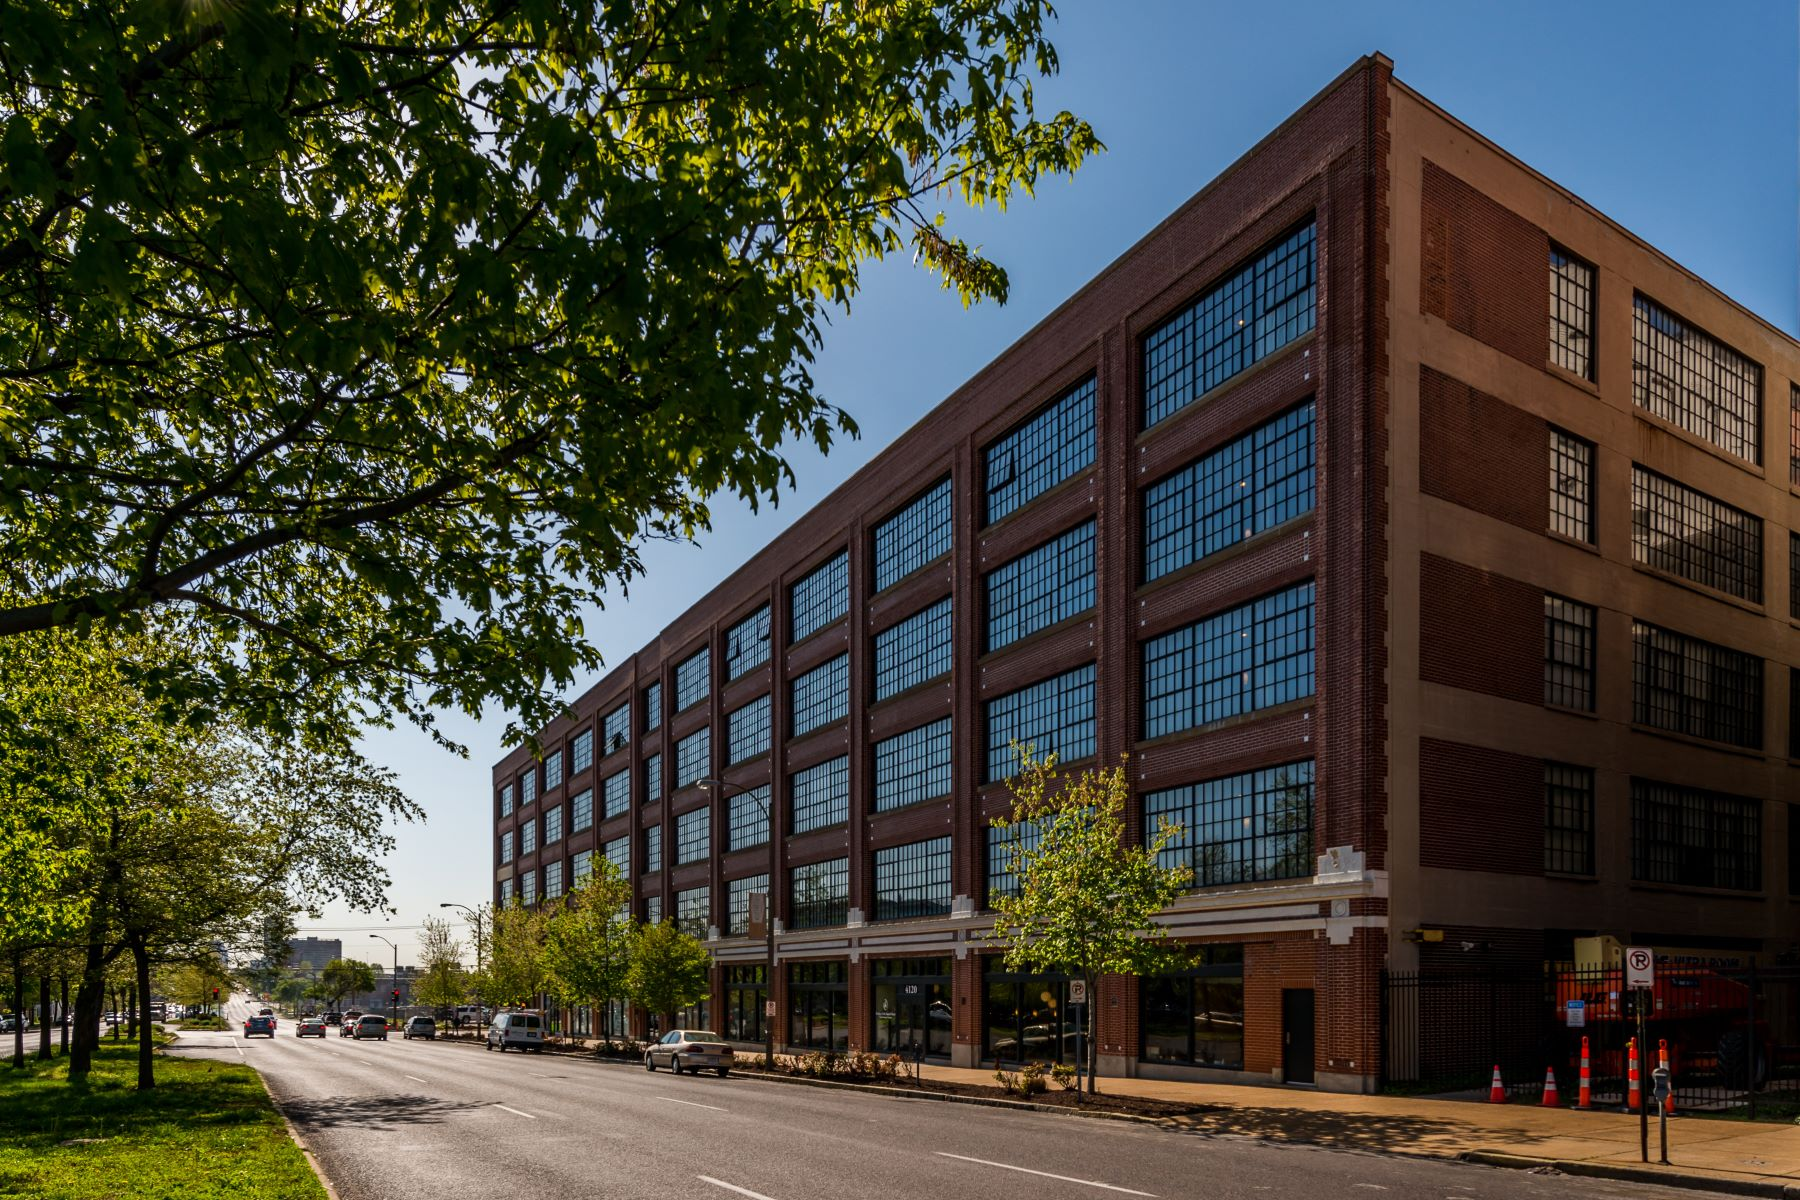 Property for Sale at West End Lofts #413 4100 Forest Park Avenue #413 St. Louis, Missouri 63108 United States